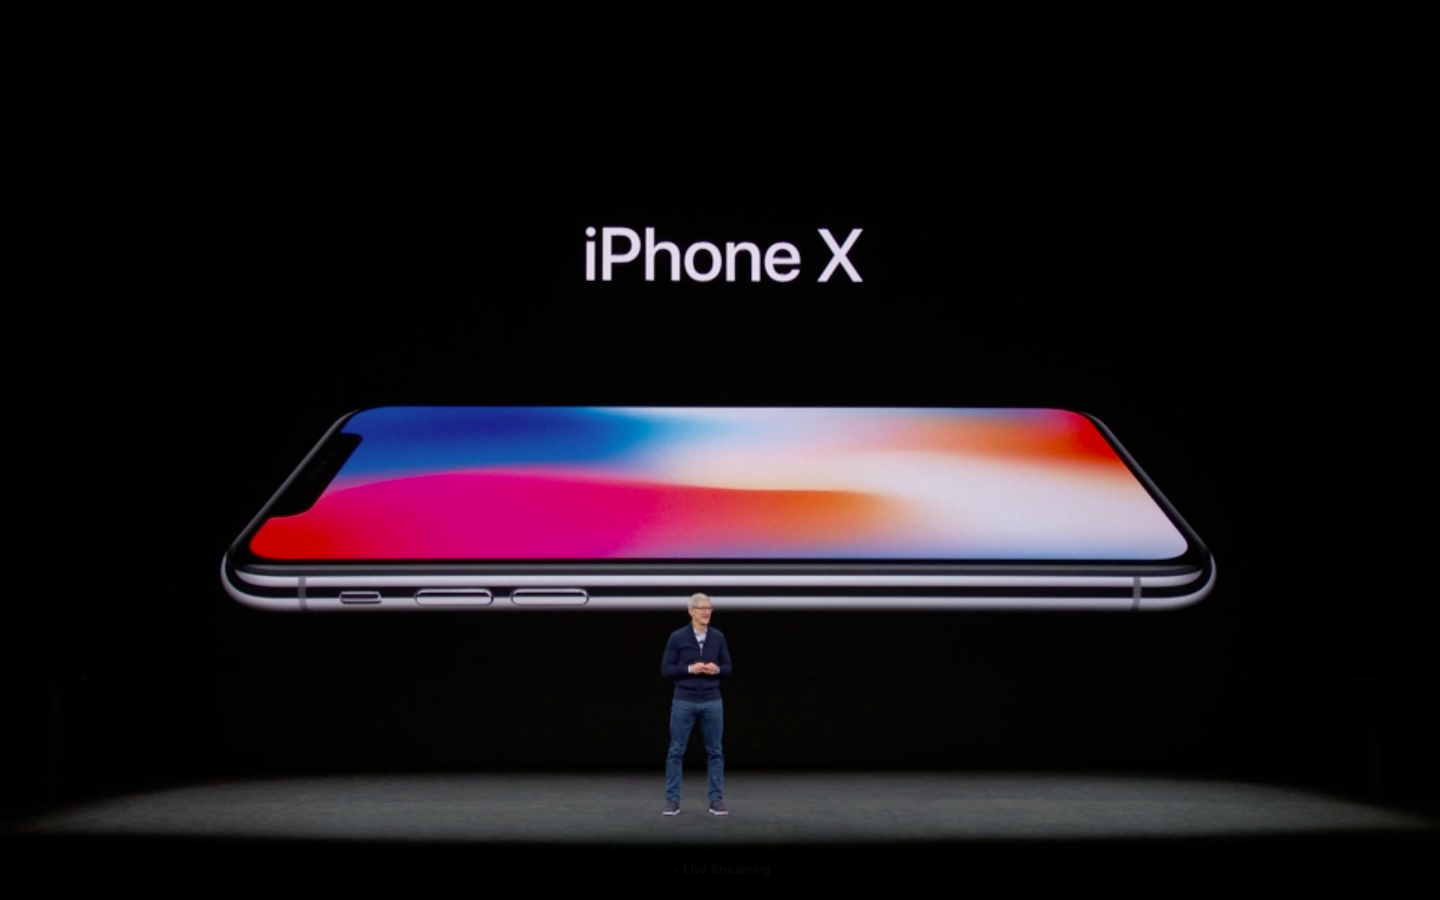 Apple's iPhone X Likely To Make Billions Of Dollars… For Samsung